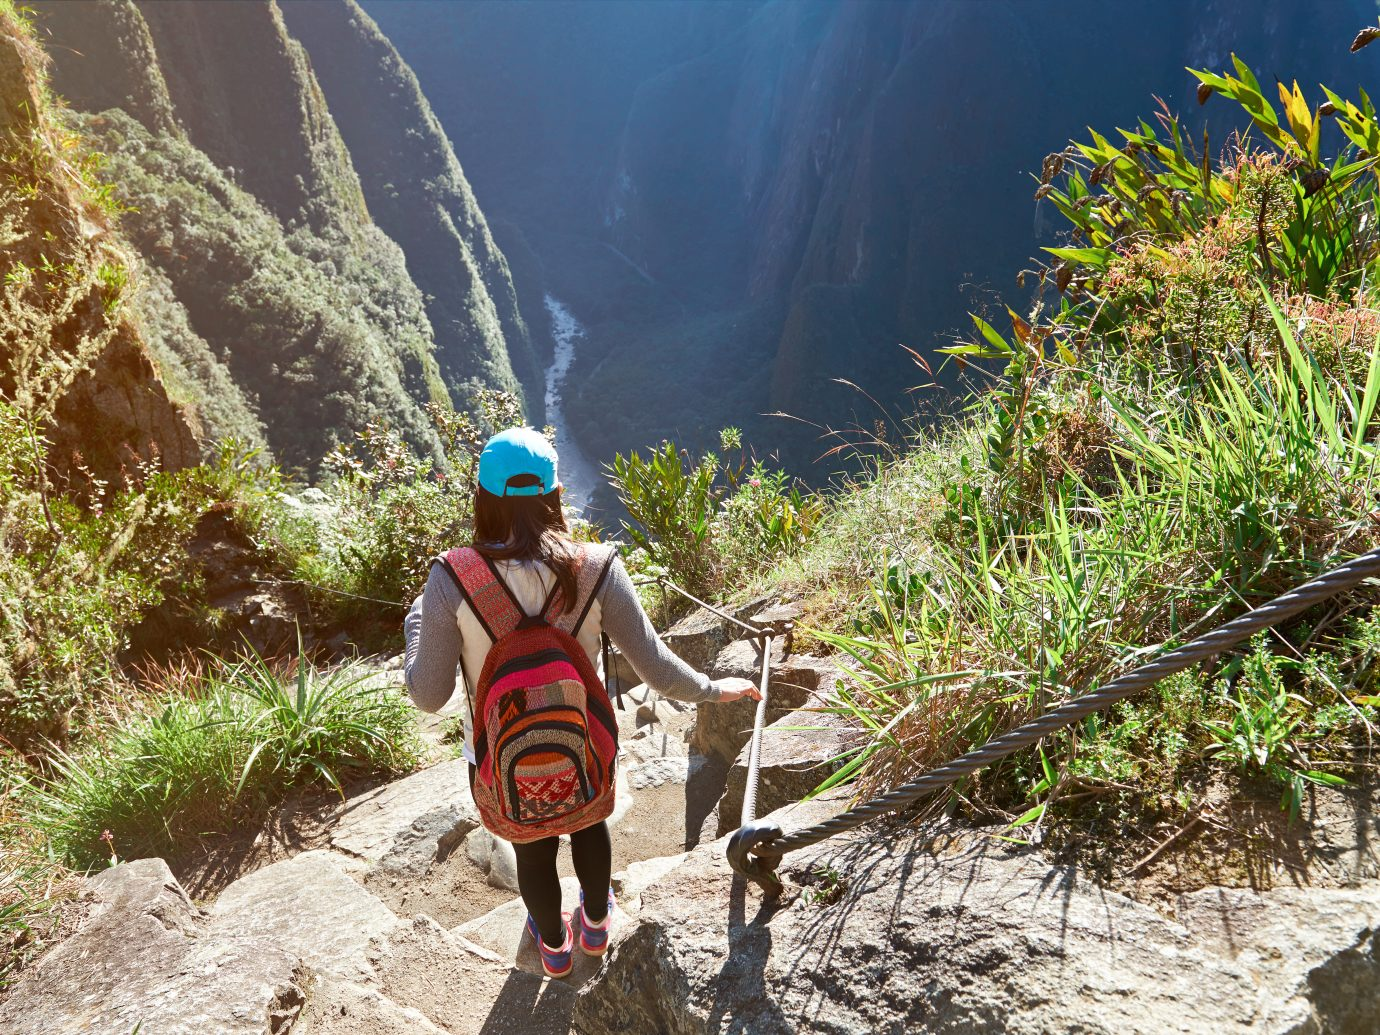 Woman in nature adventure walk in mountain landscape. Girl doing trekking in Machu Picchu path